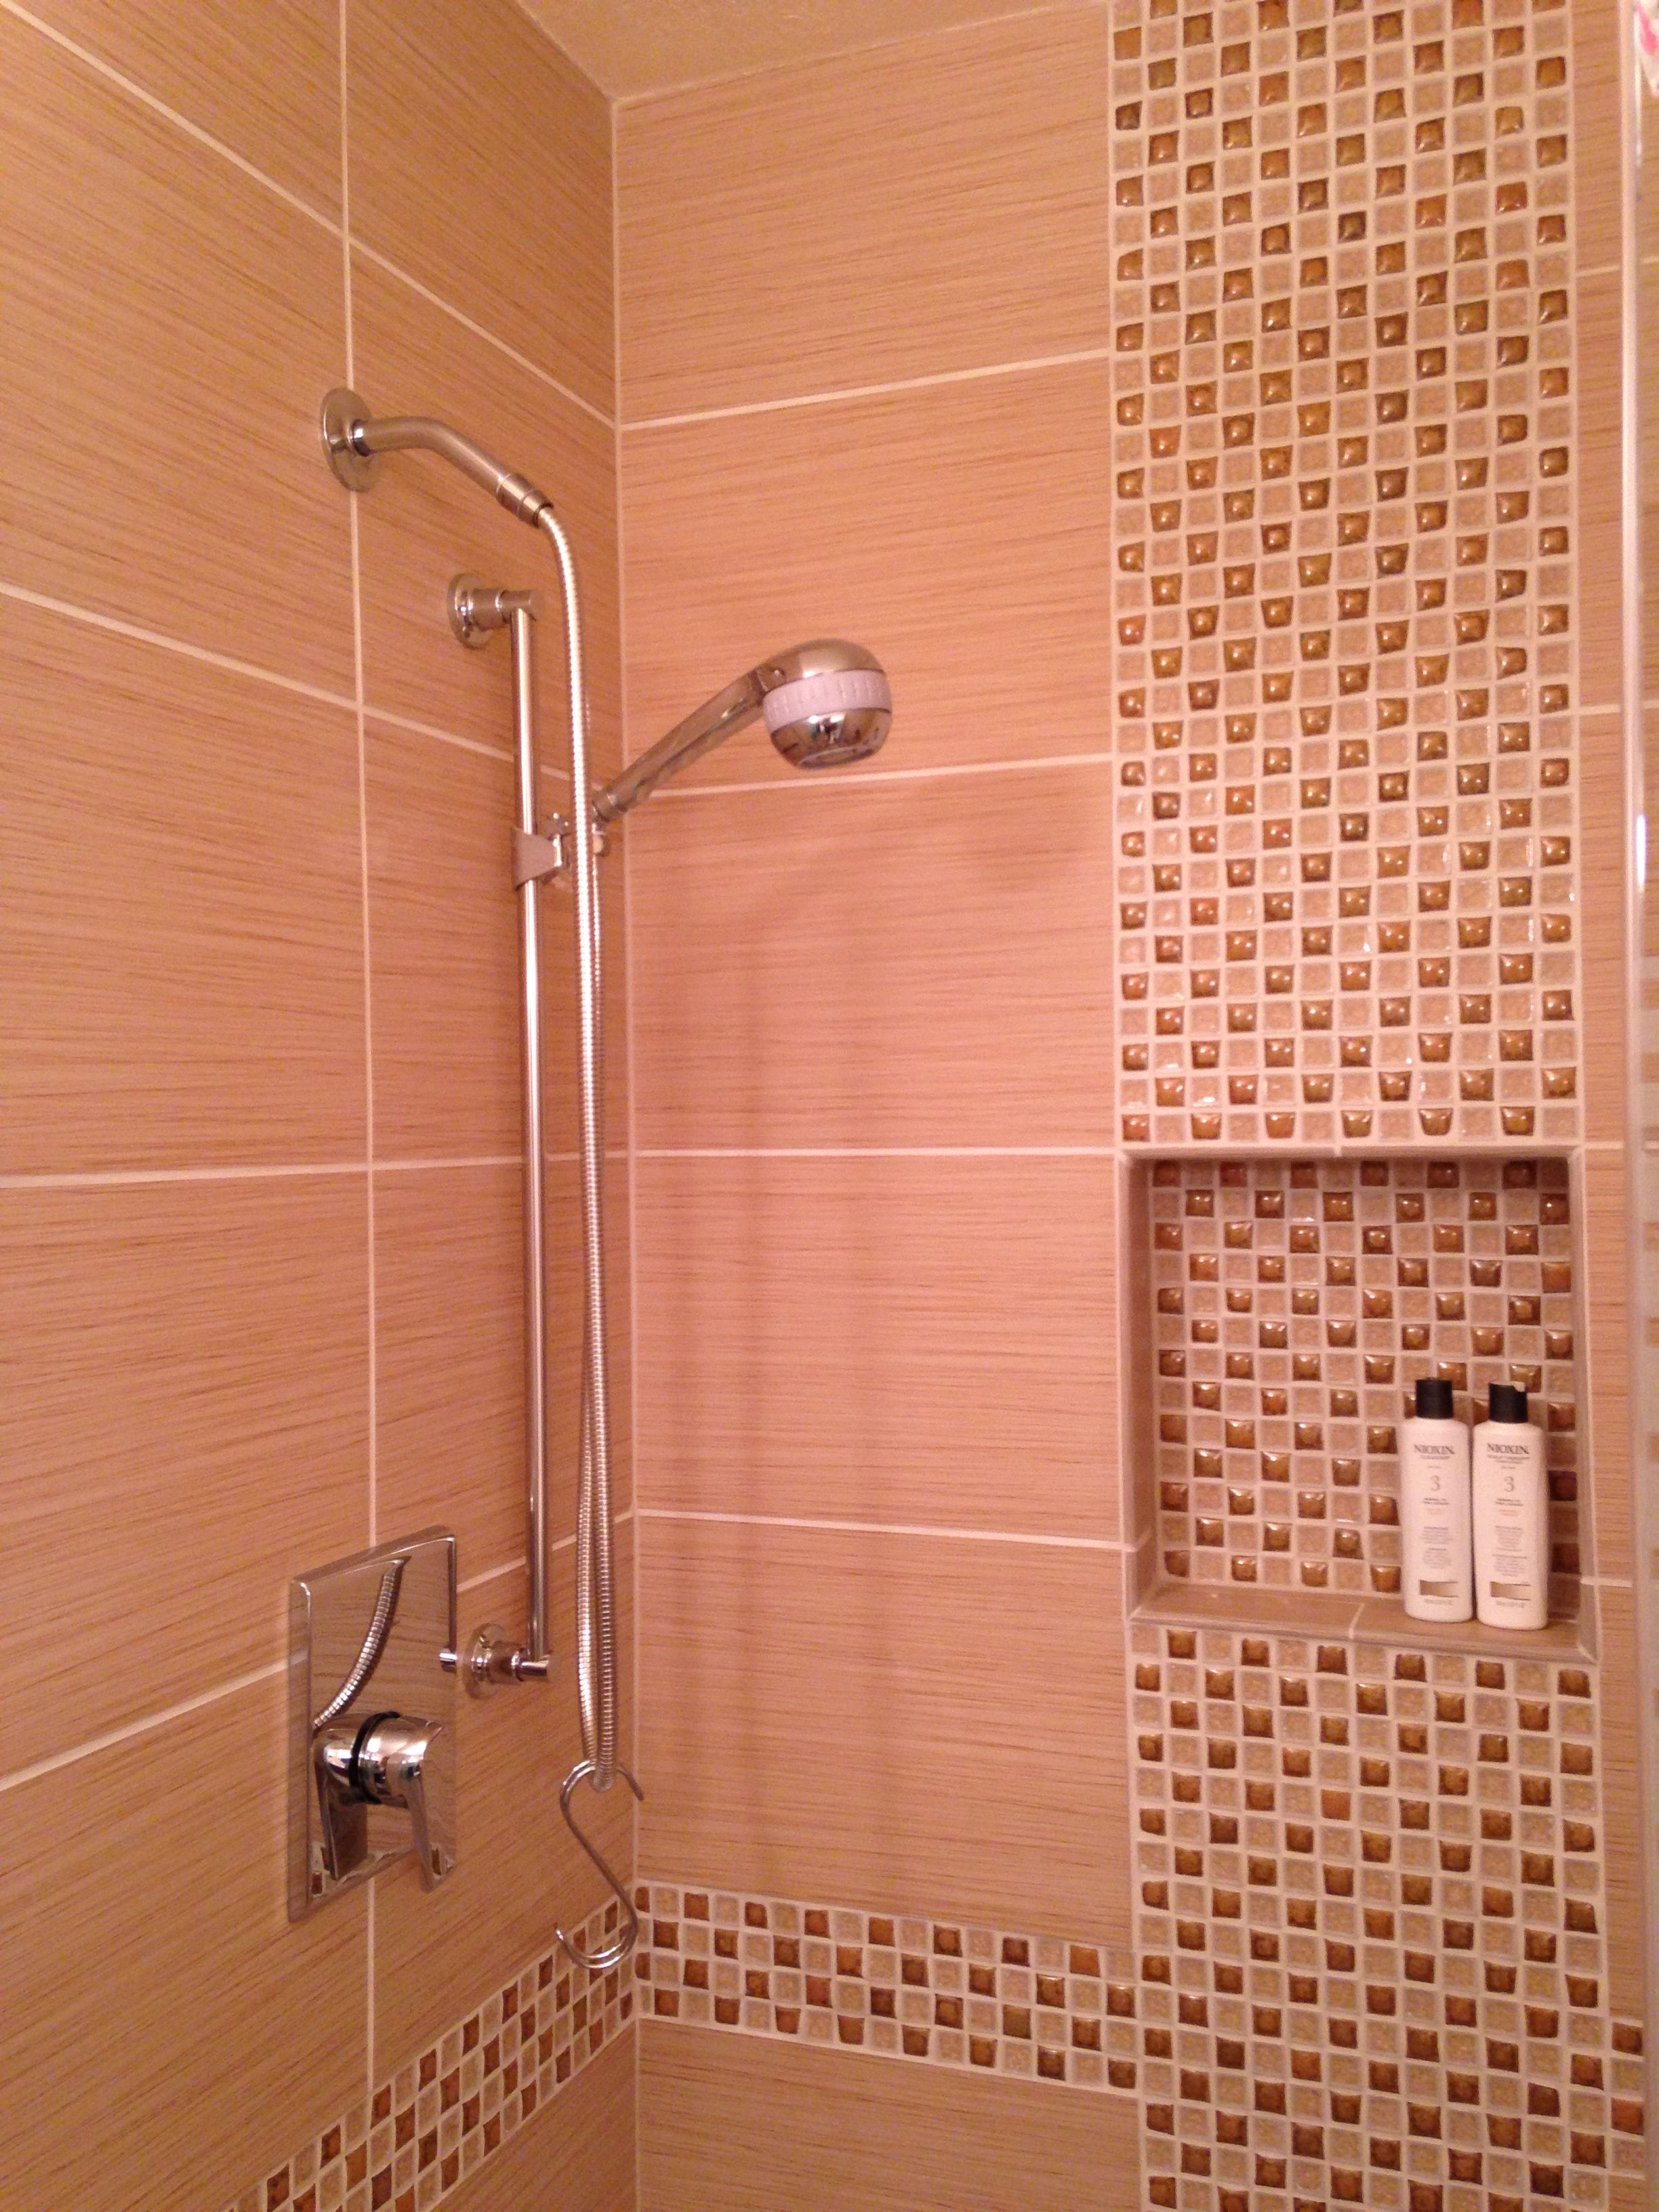 Small bathrooms bathroom remodeling ideas for small bath design - 12 X 24 Tile With Offset Vertical Mosaic Inlay Shower